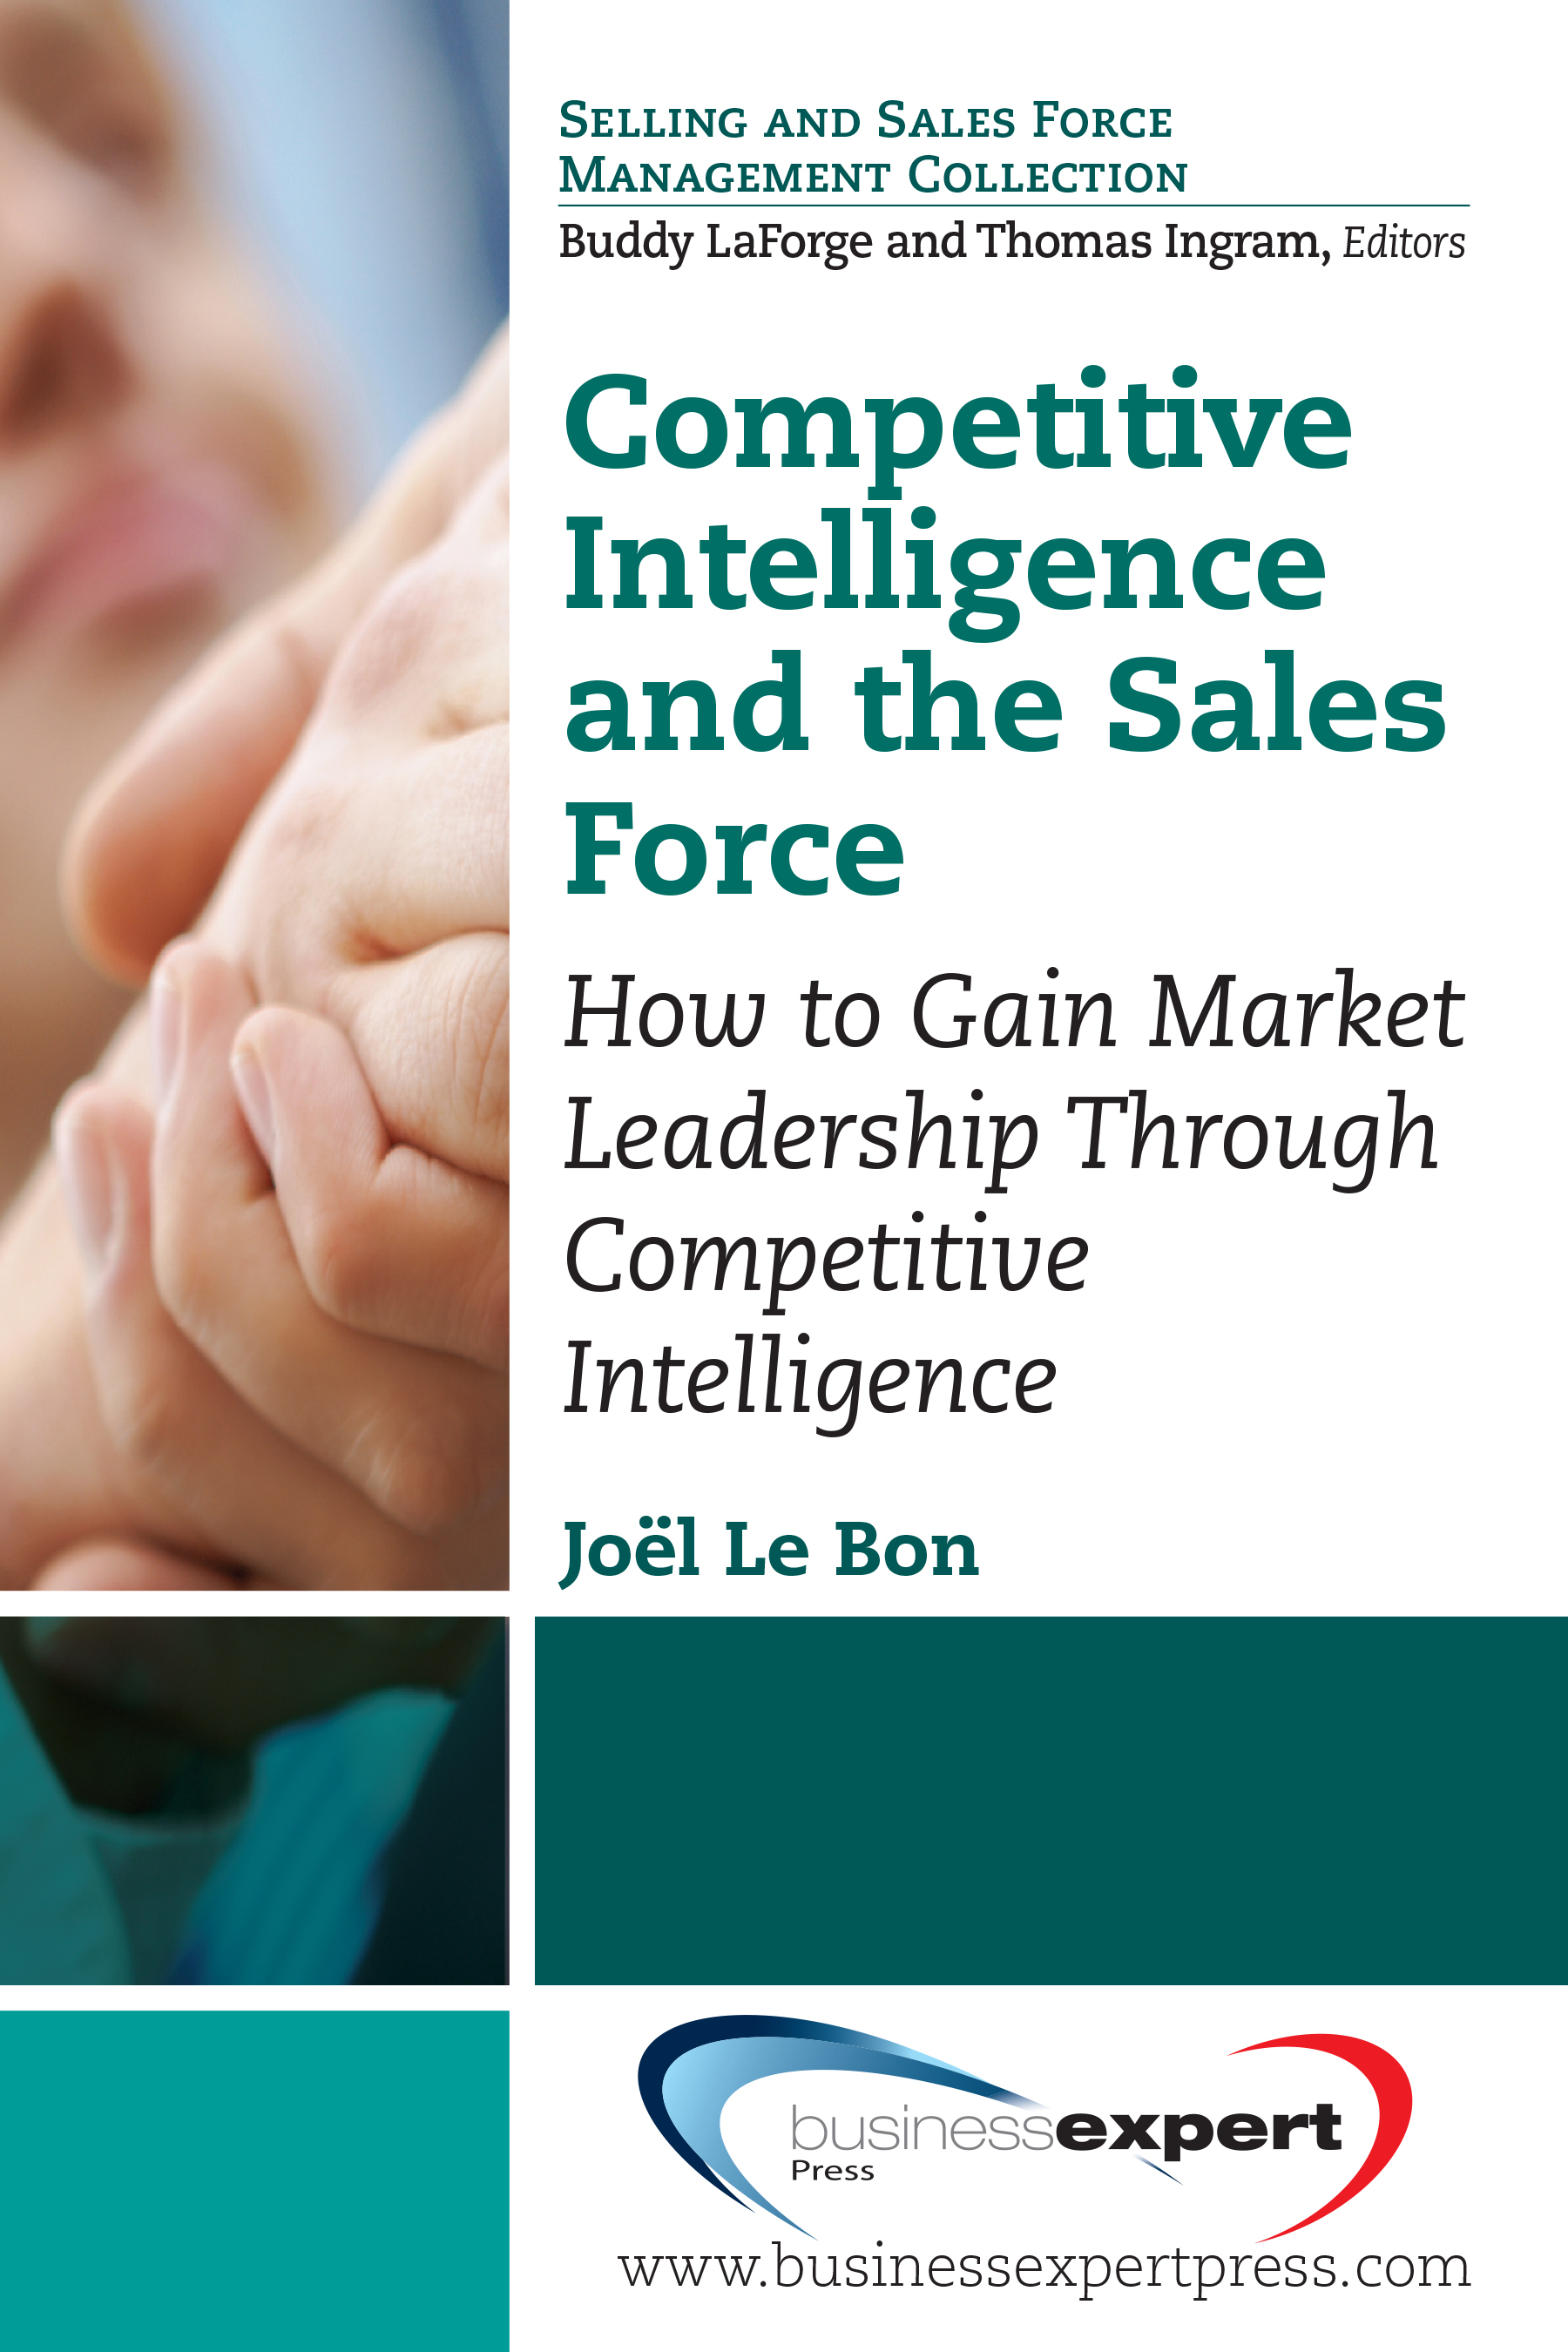 Download Ebook Competitive Intelligence and the Sales Force by Joel Le Bon Pdf